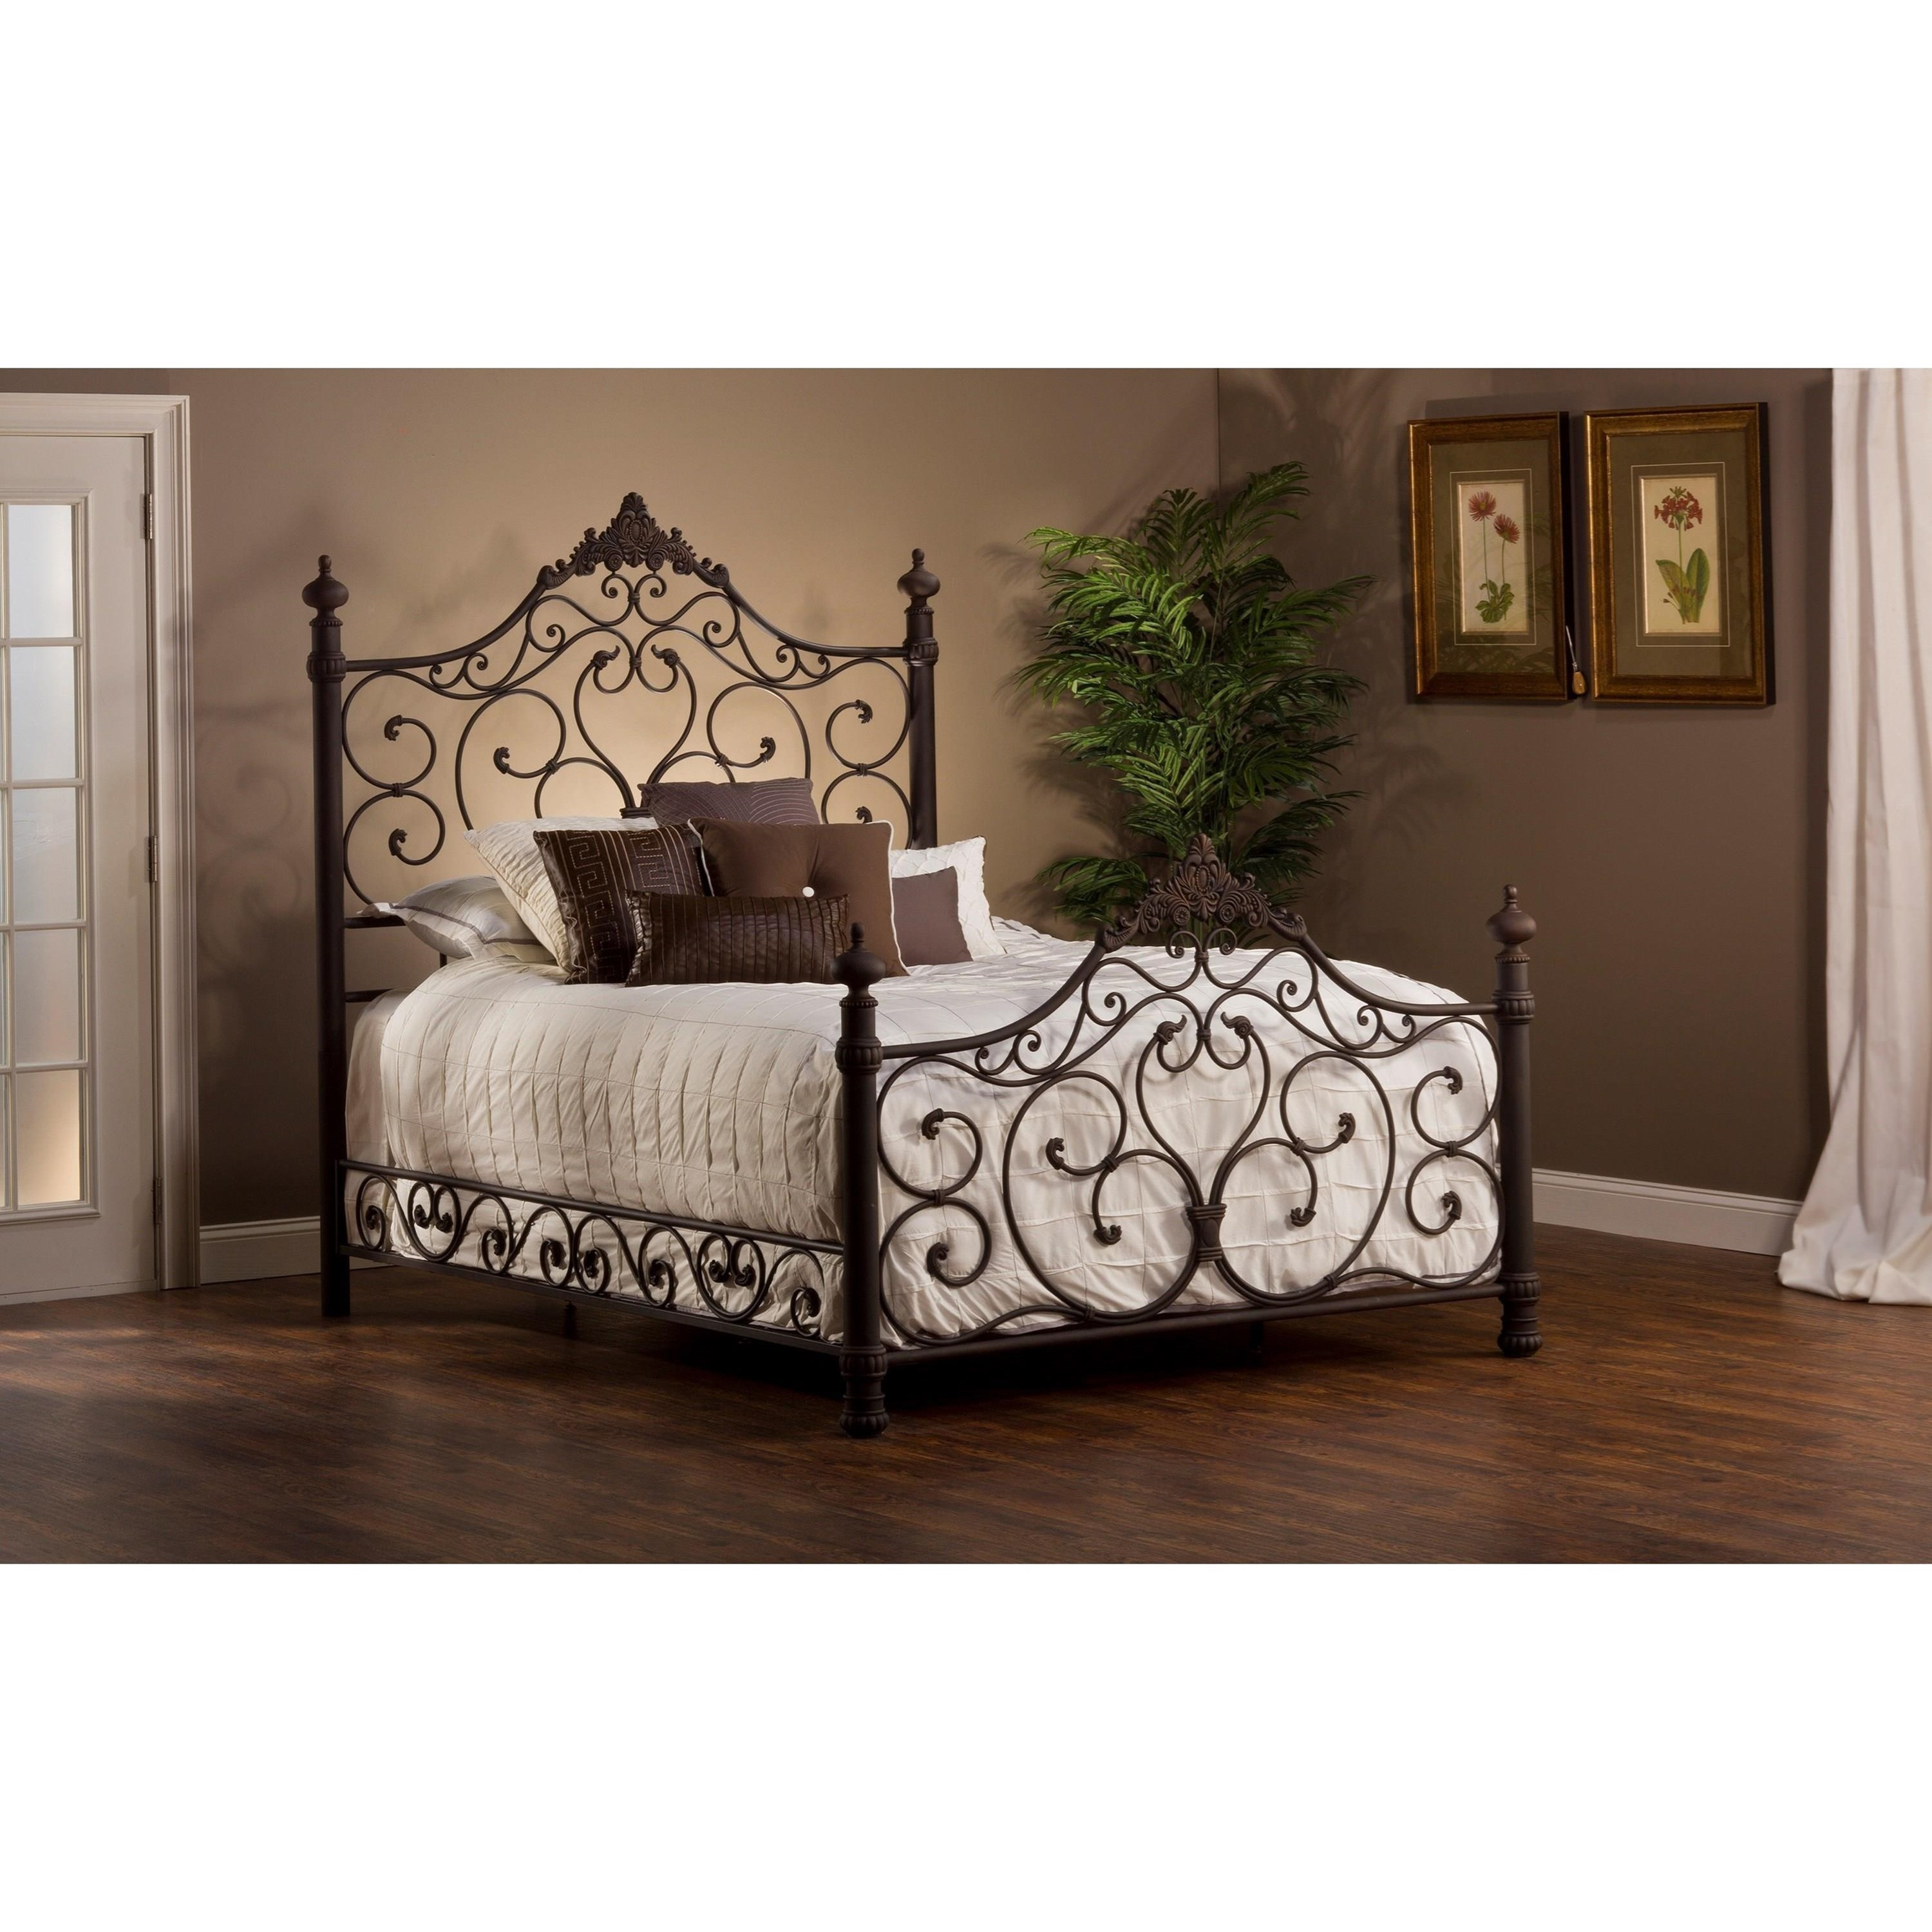 Hillsdale Metal Beds Queen Bed Set with Rails - Item Number: 1742BQR